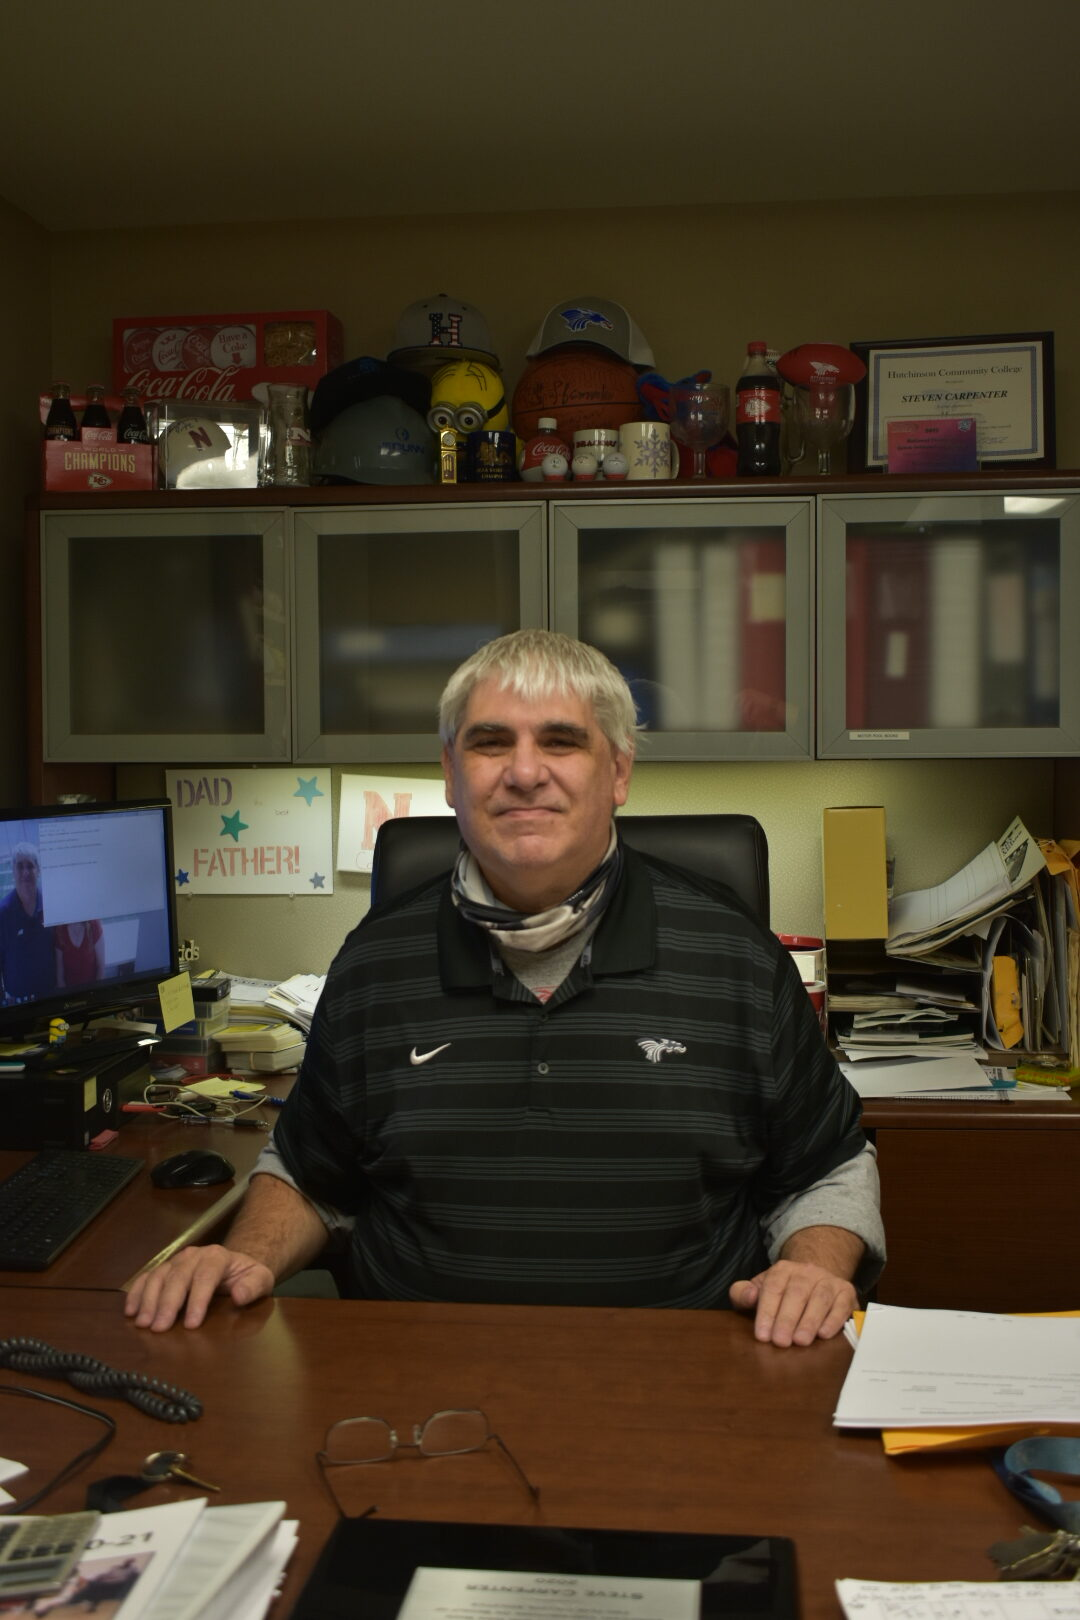 The crazy life of Carp: HutchCC Sports Information Director has much on his plate